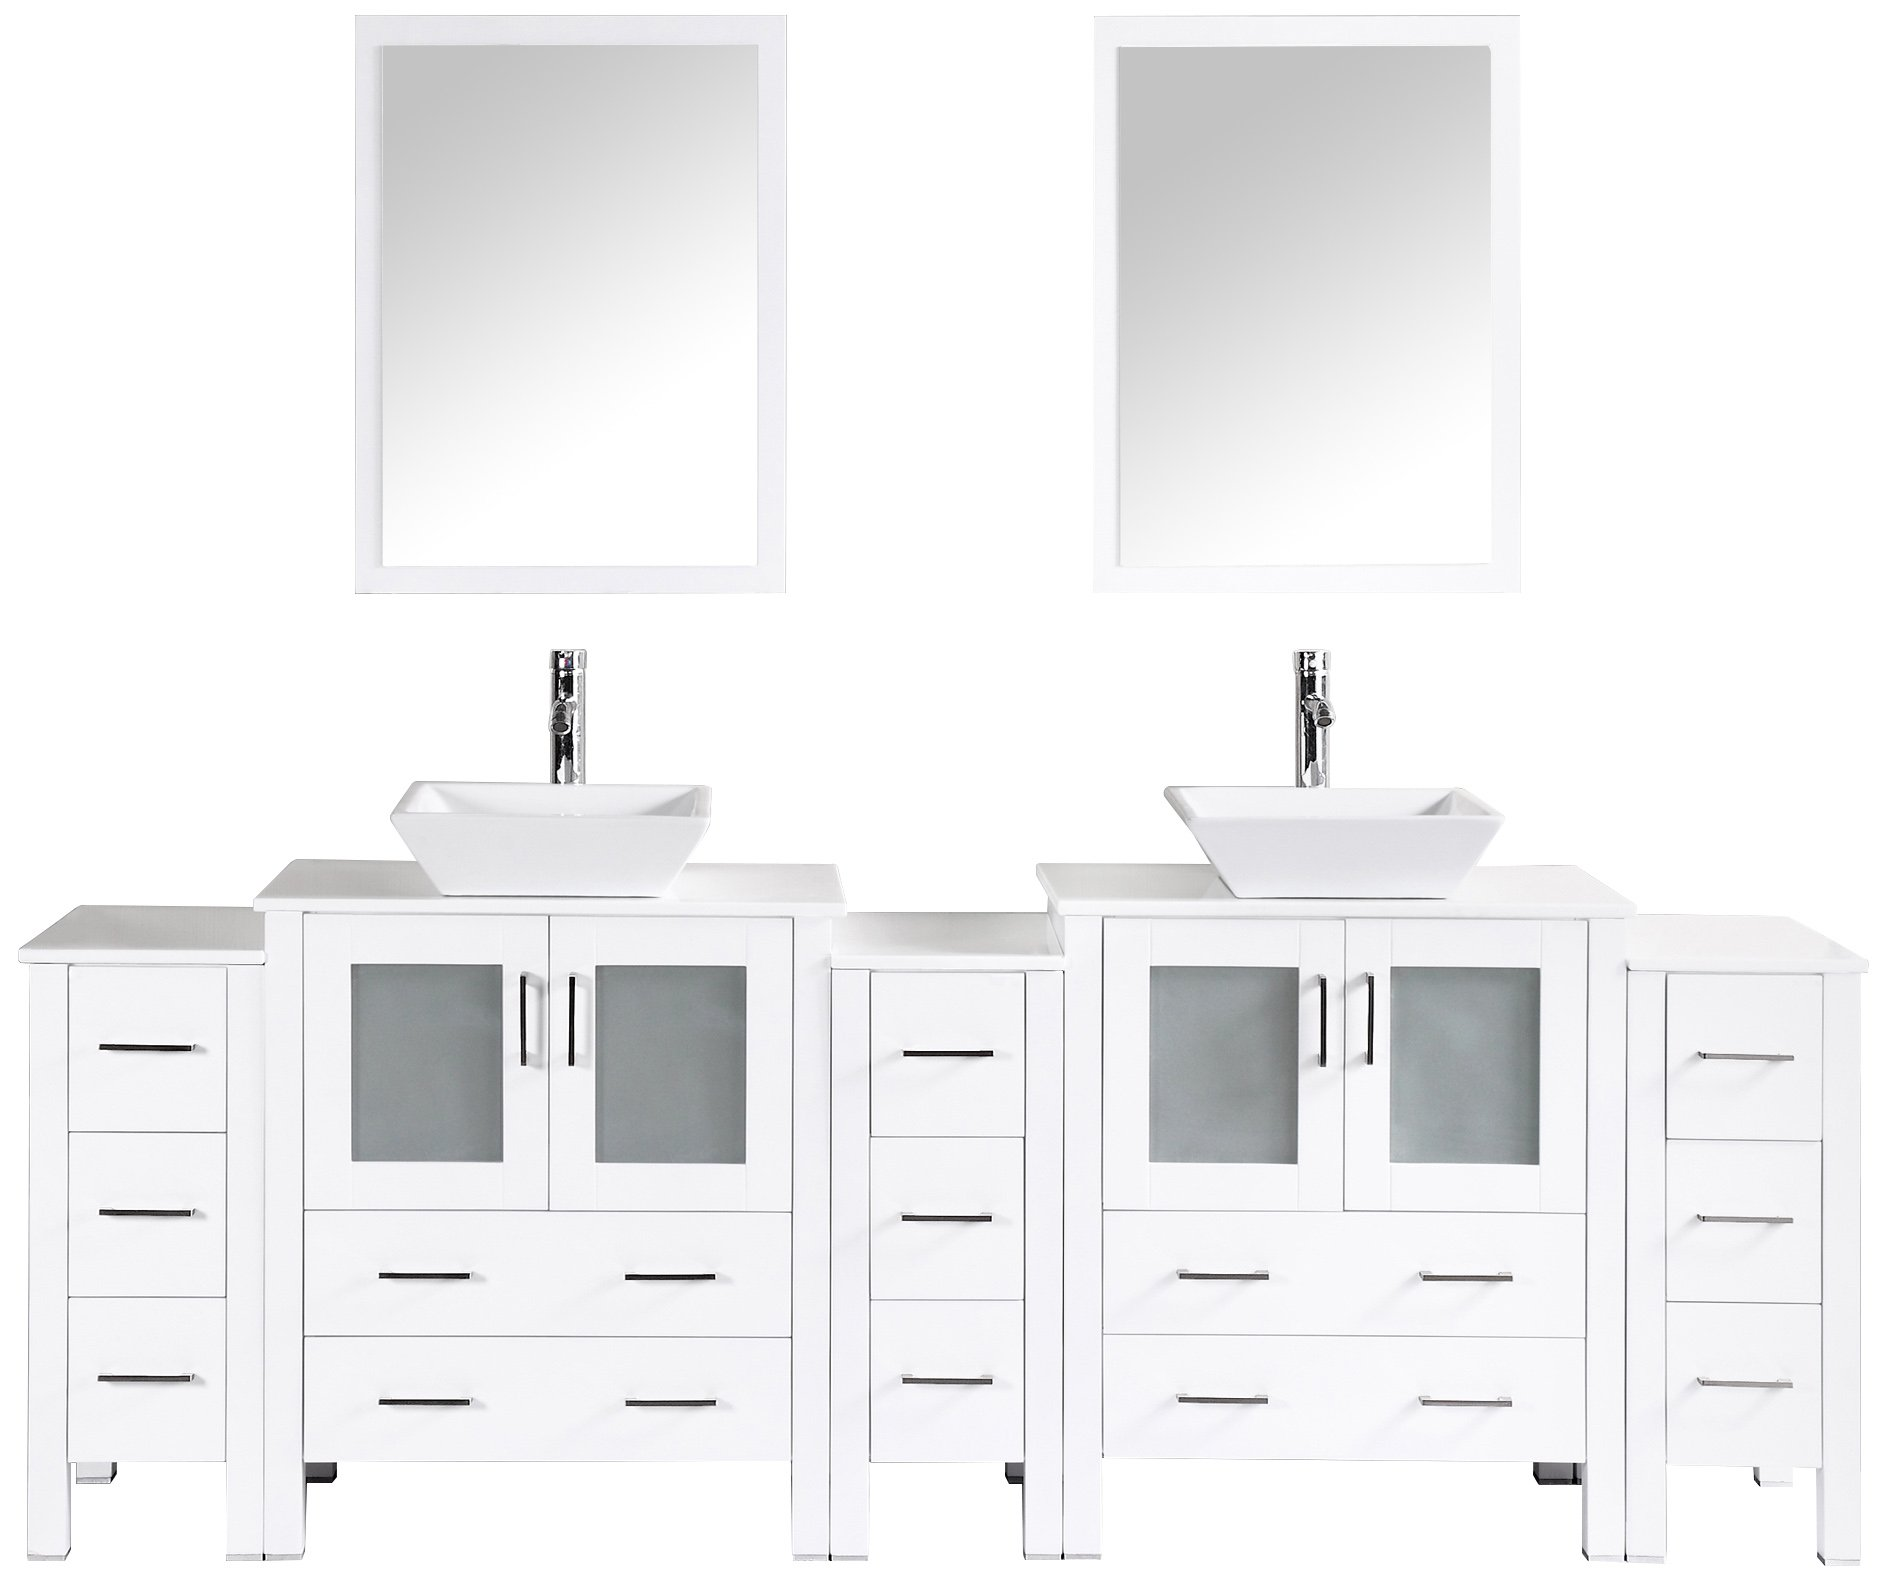 Bosconi Bathroom Vanities 96'' Classic Double Vanity Set With Square Vessel Sinks, Countertops, 2 Cabinets, 2 Mirrors, And 3 Side Cabinets, White/Phoenix Stone